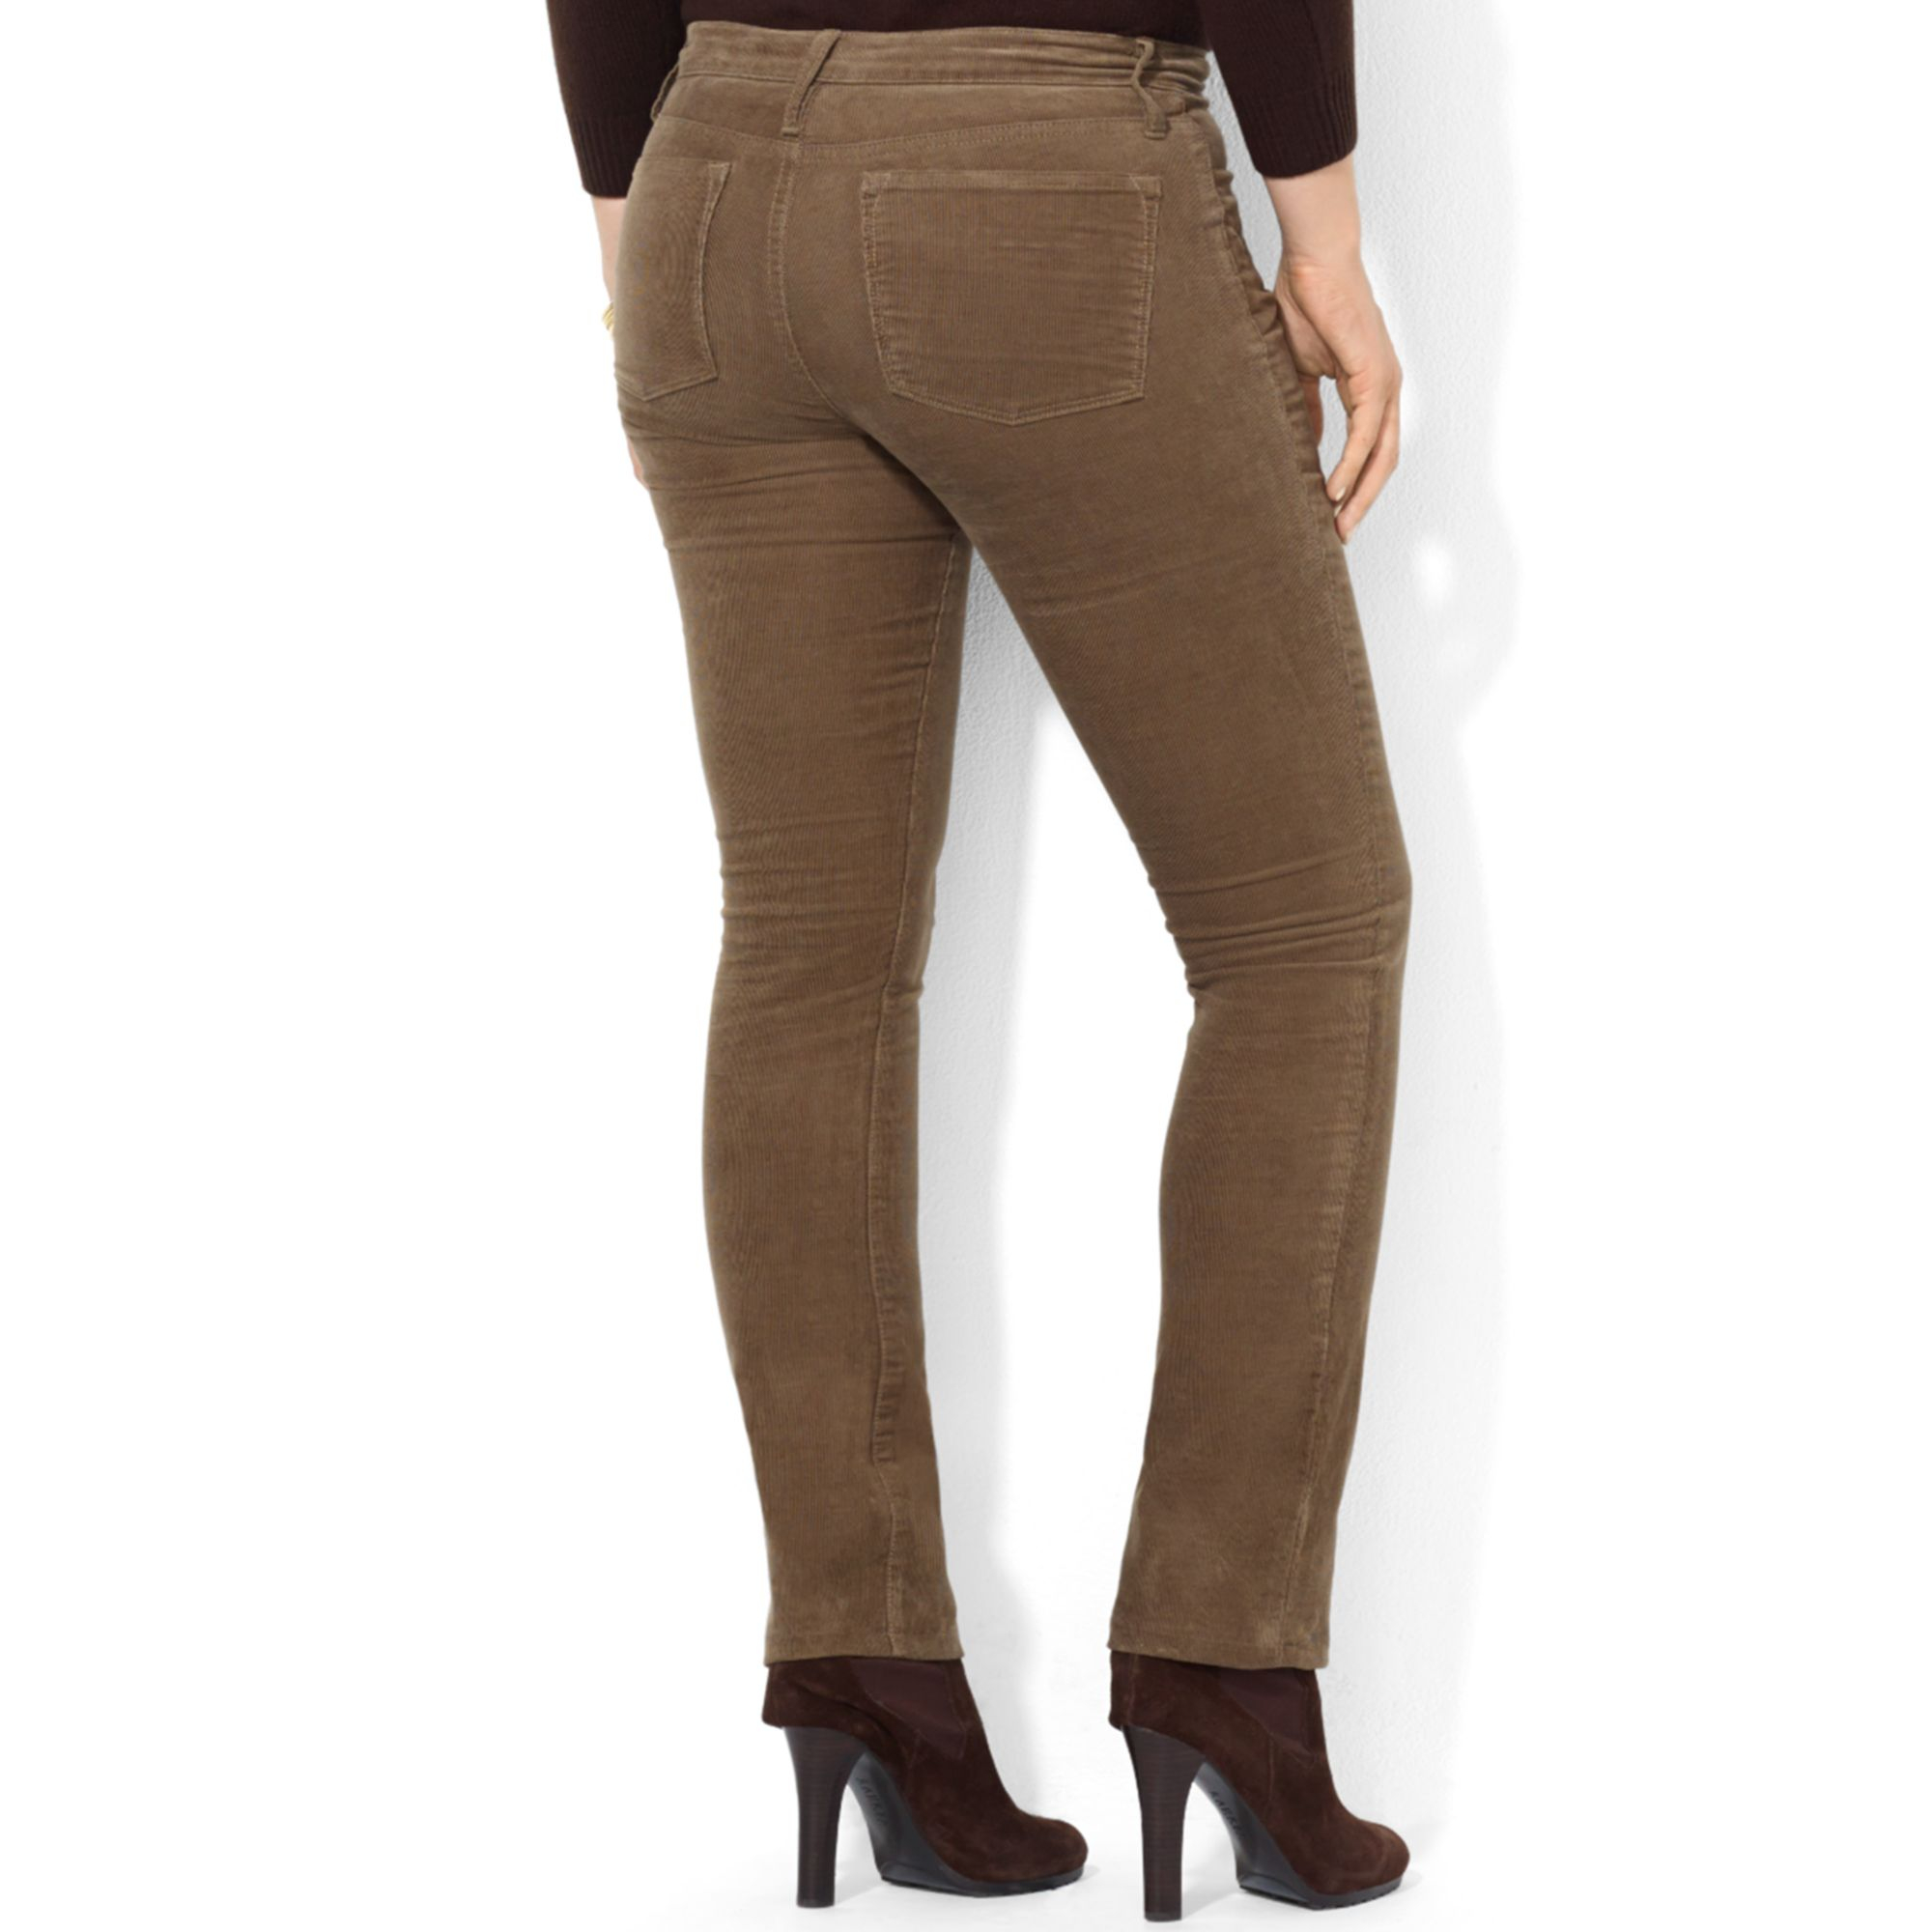 Lauren by ralph lauren Plus Size Straight leg Corduroy Pants in ...